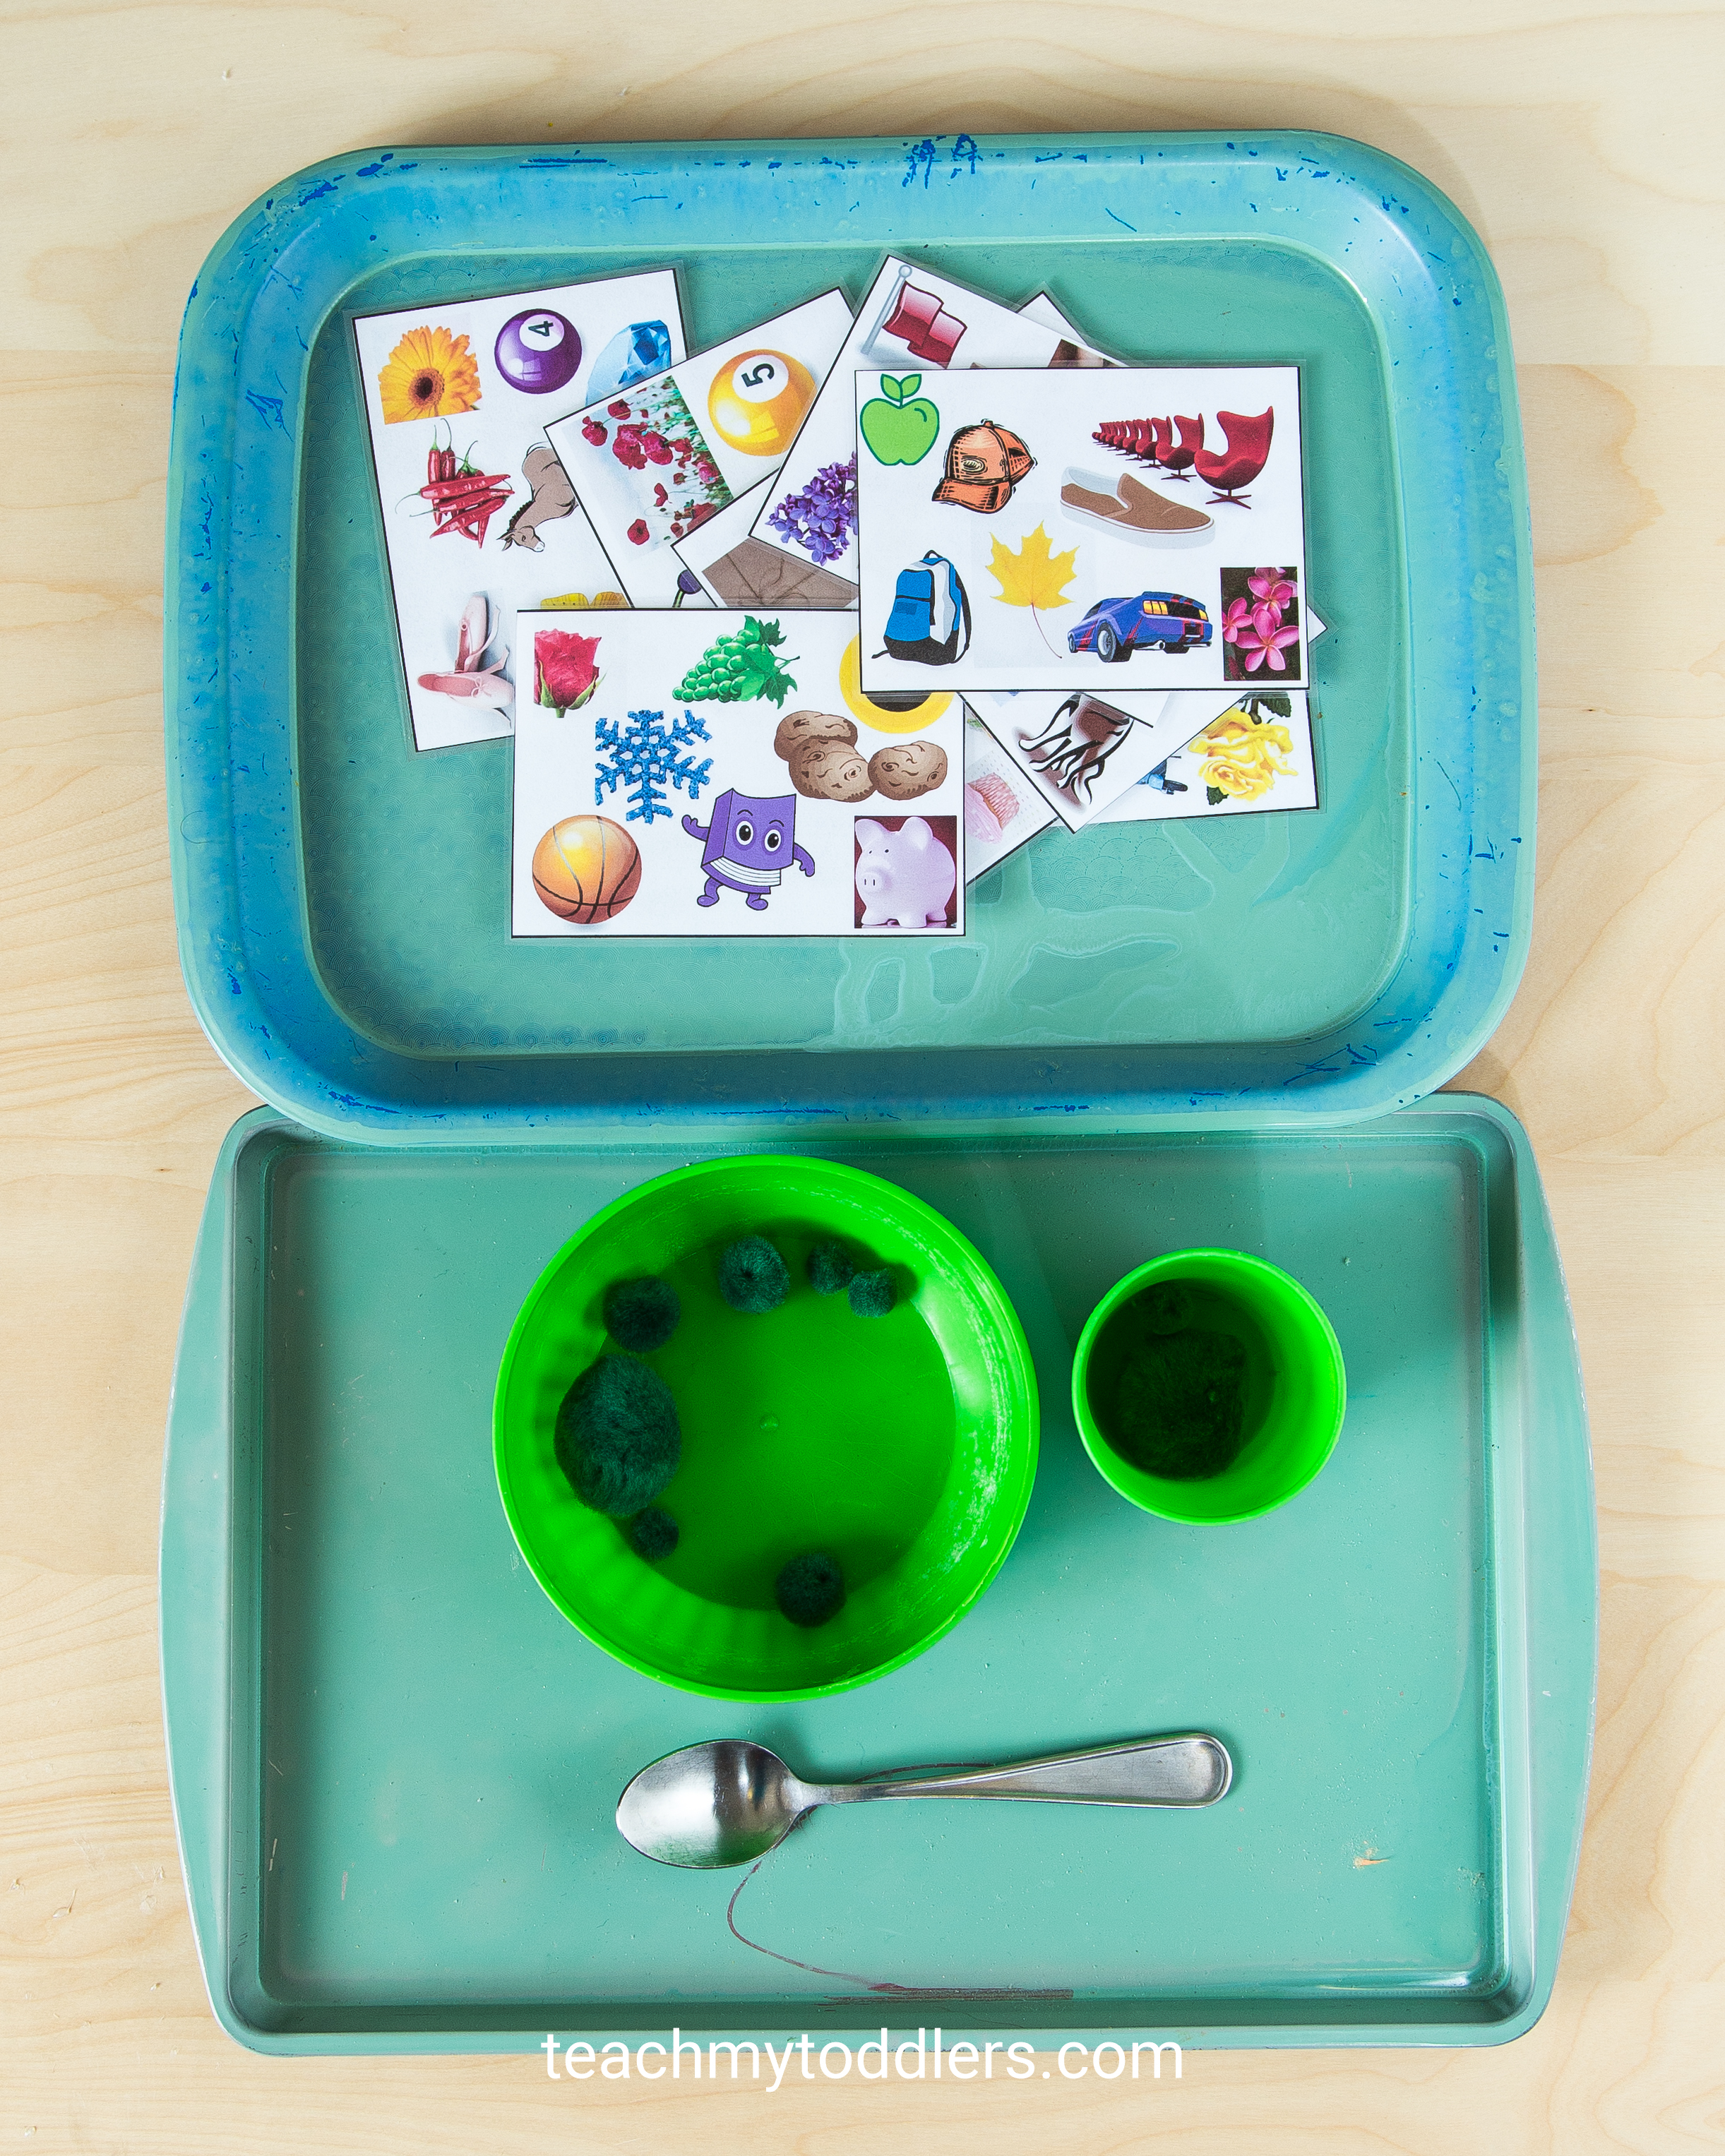 A fun game to teach your toddler the color green